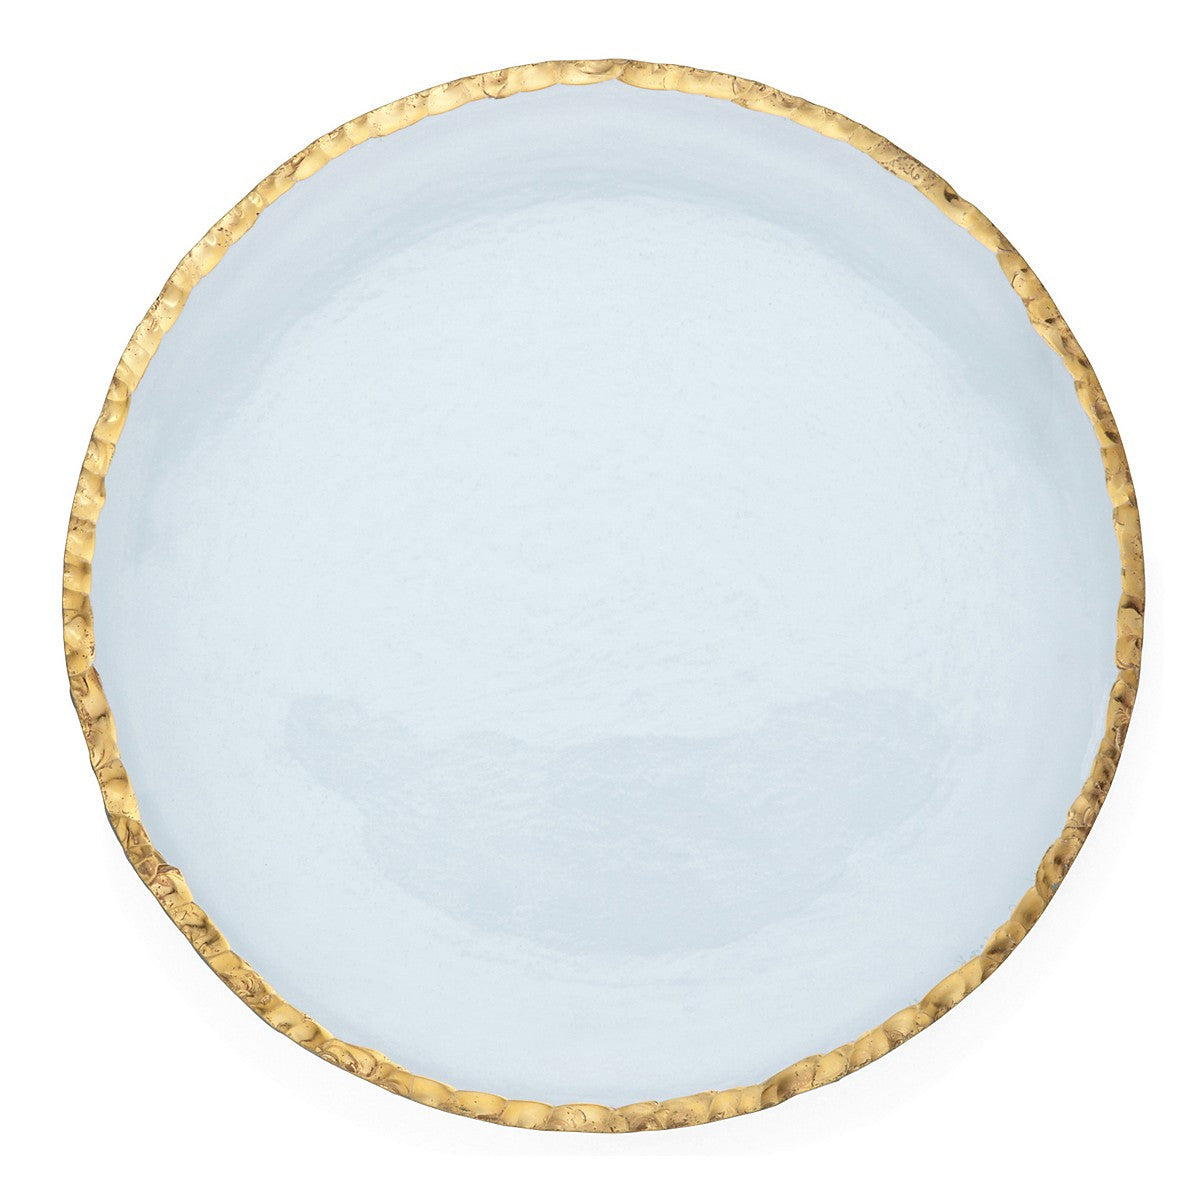 Edgey Gold Dinner Plate